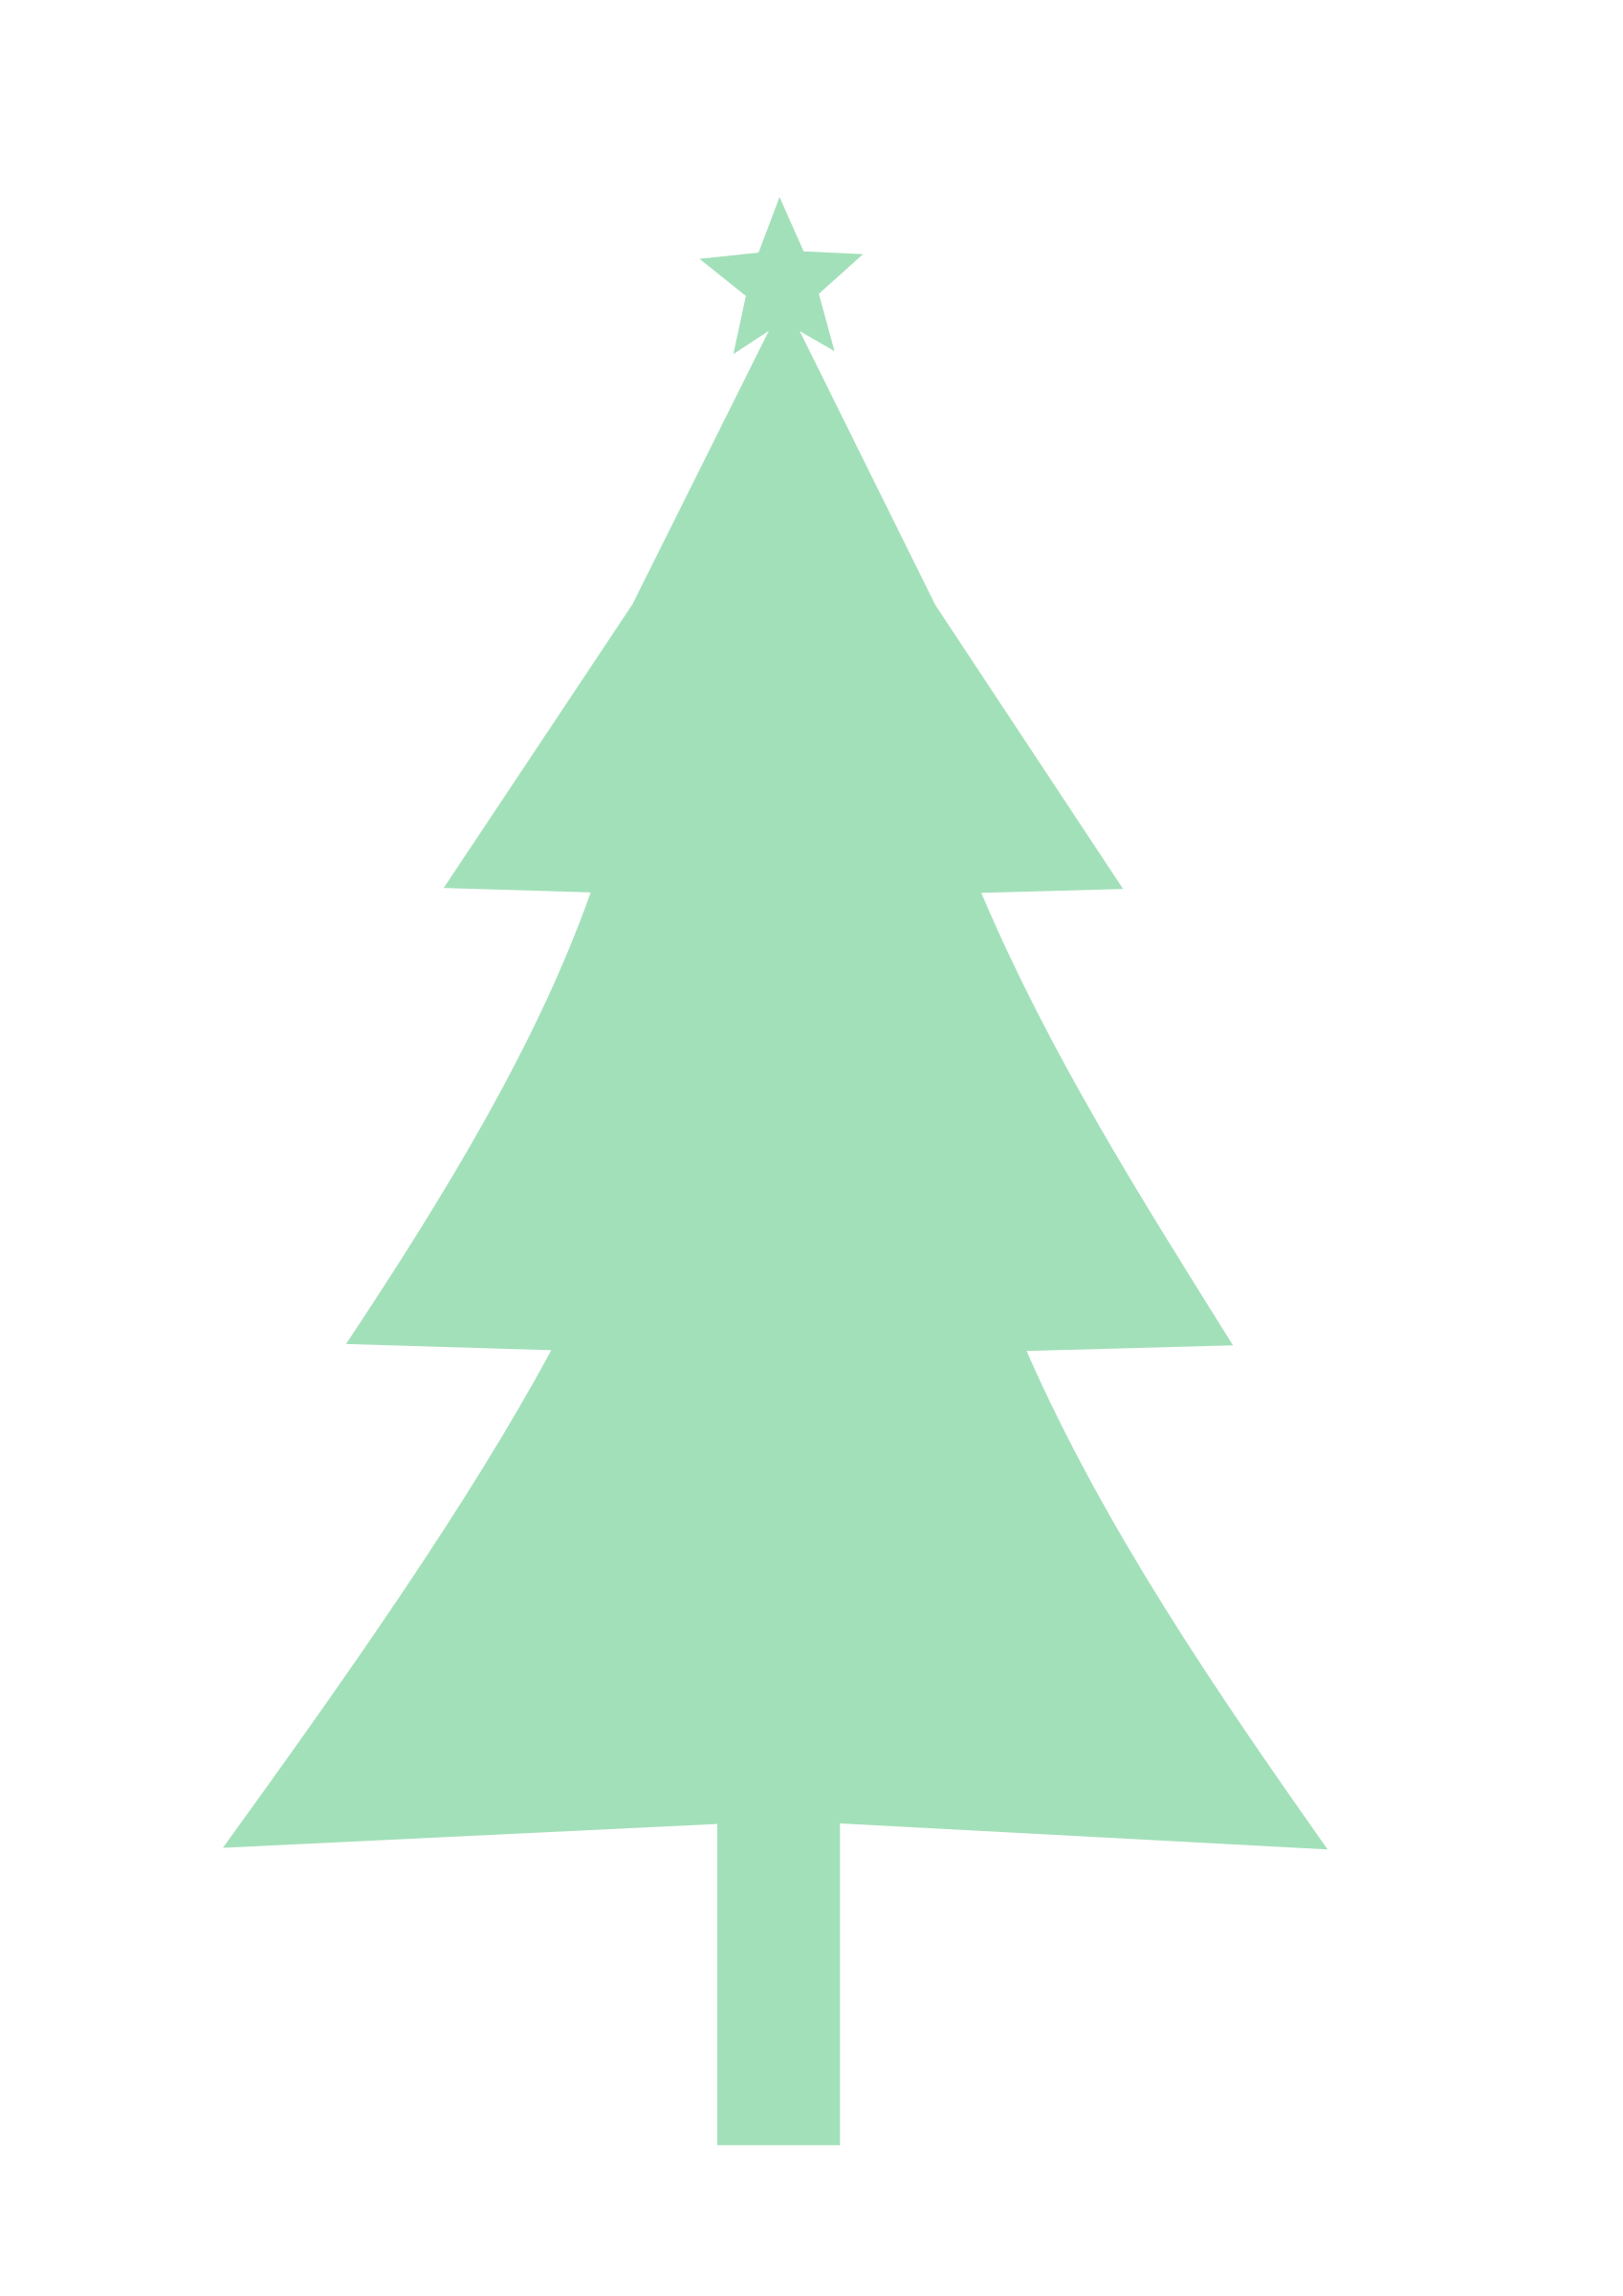 Christmas tree clipart silhouette picture free Clipart - Christmas tree Silhouette picture free